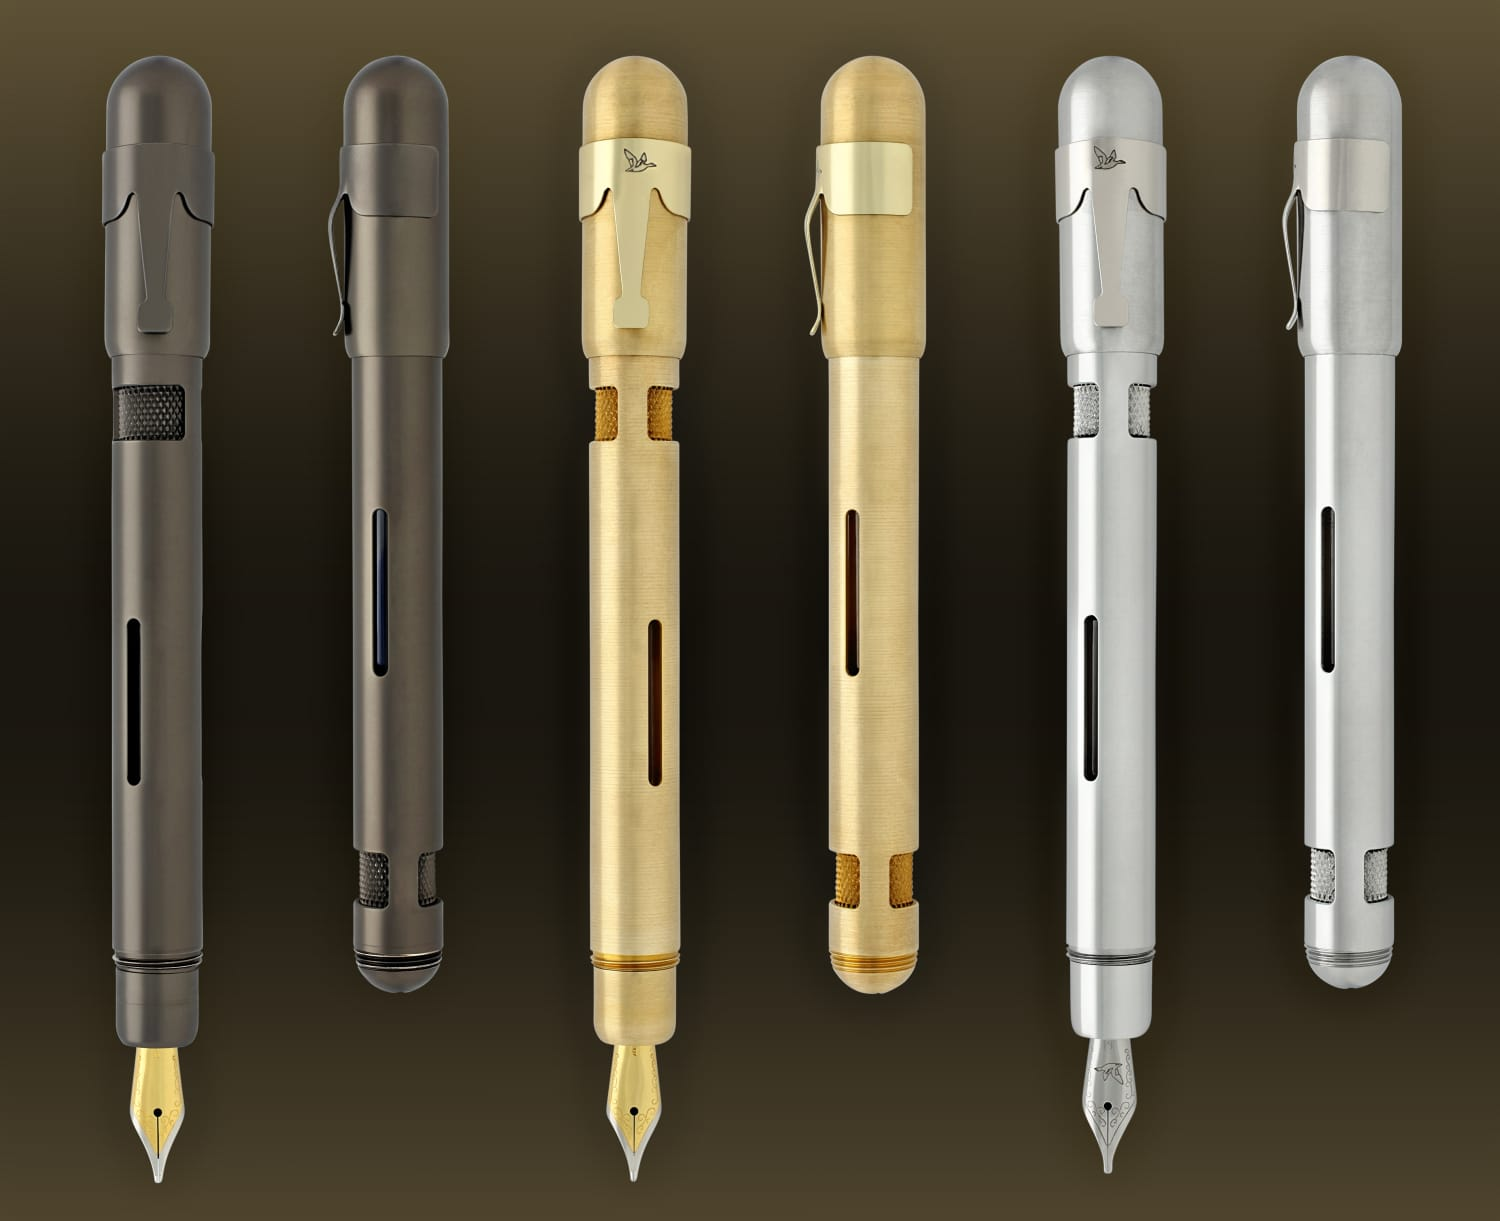 Introducing Loclen Pens from Italy